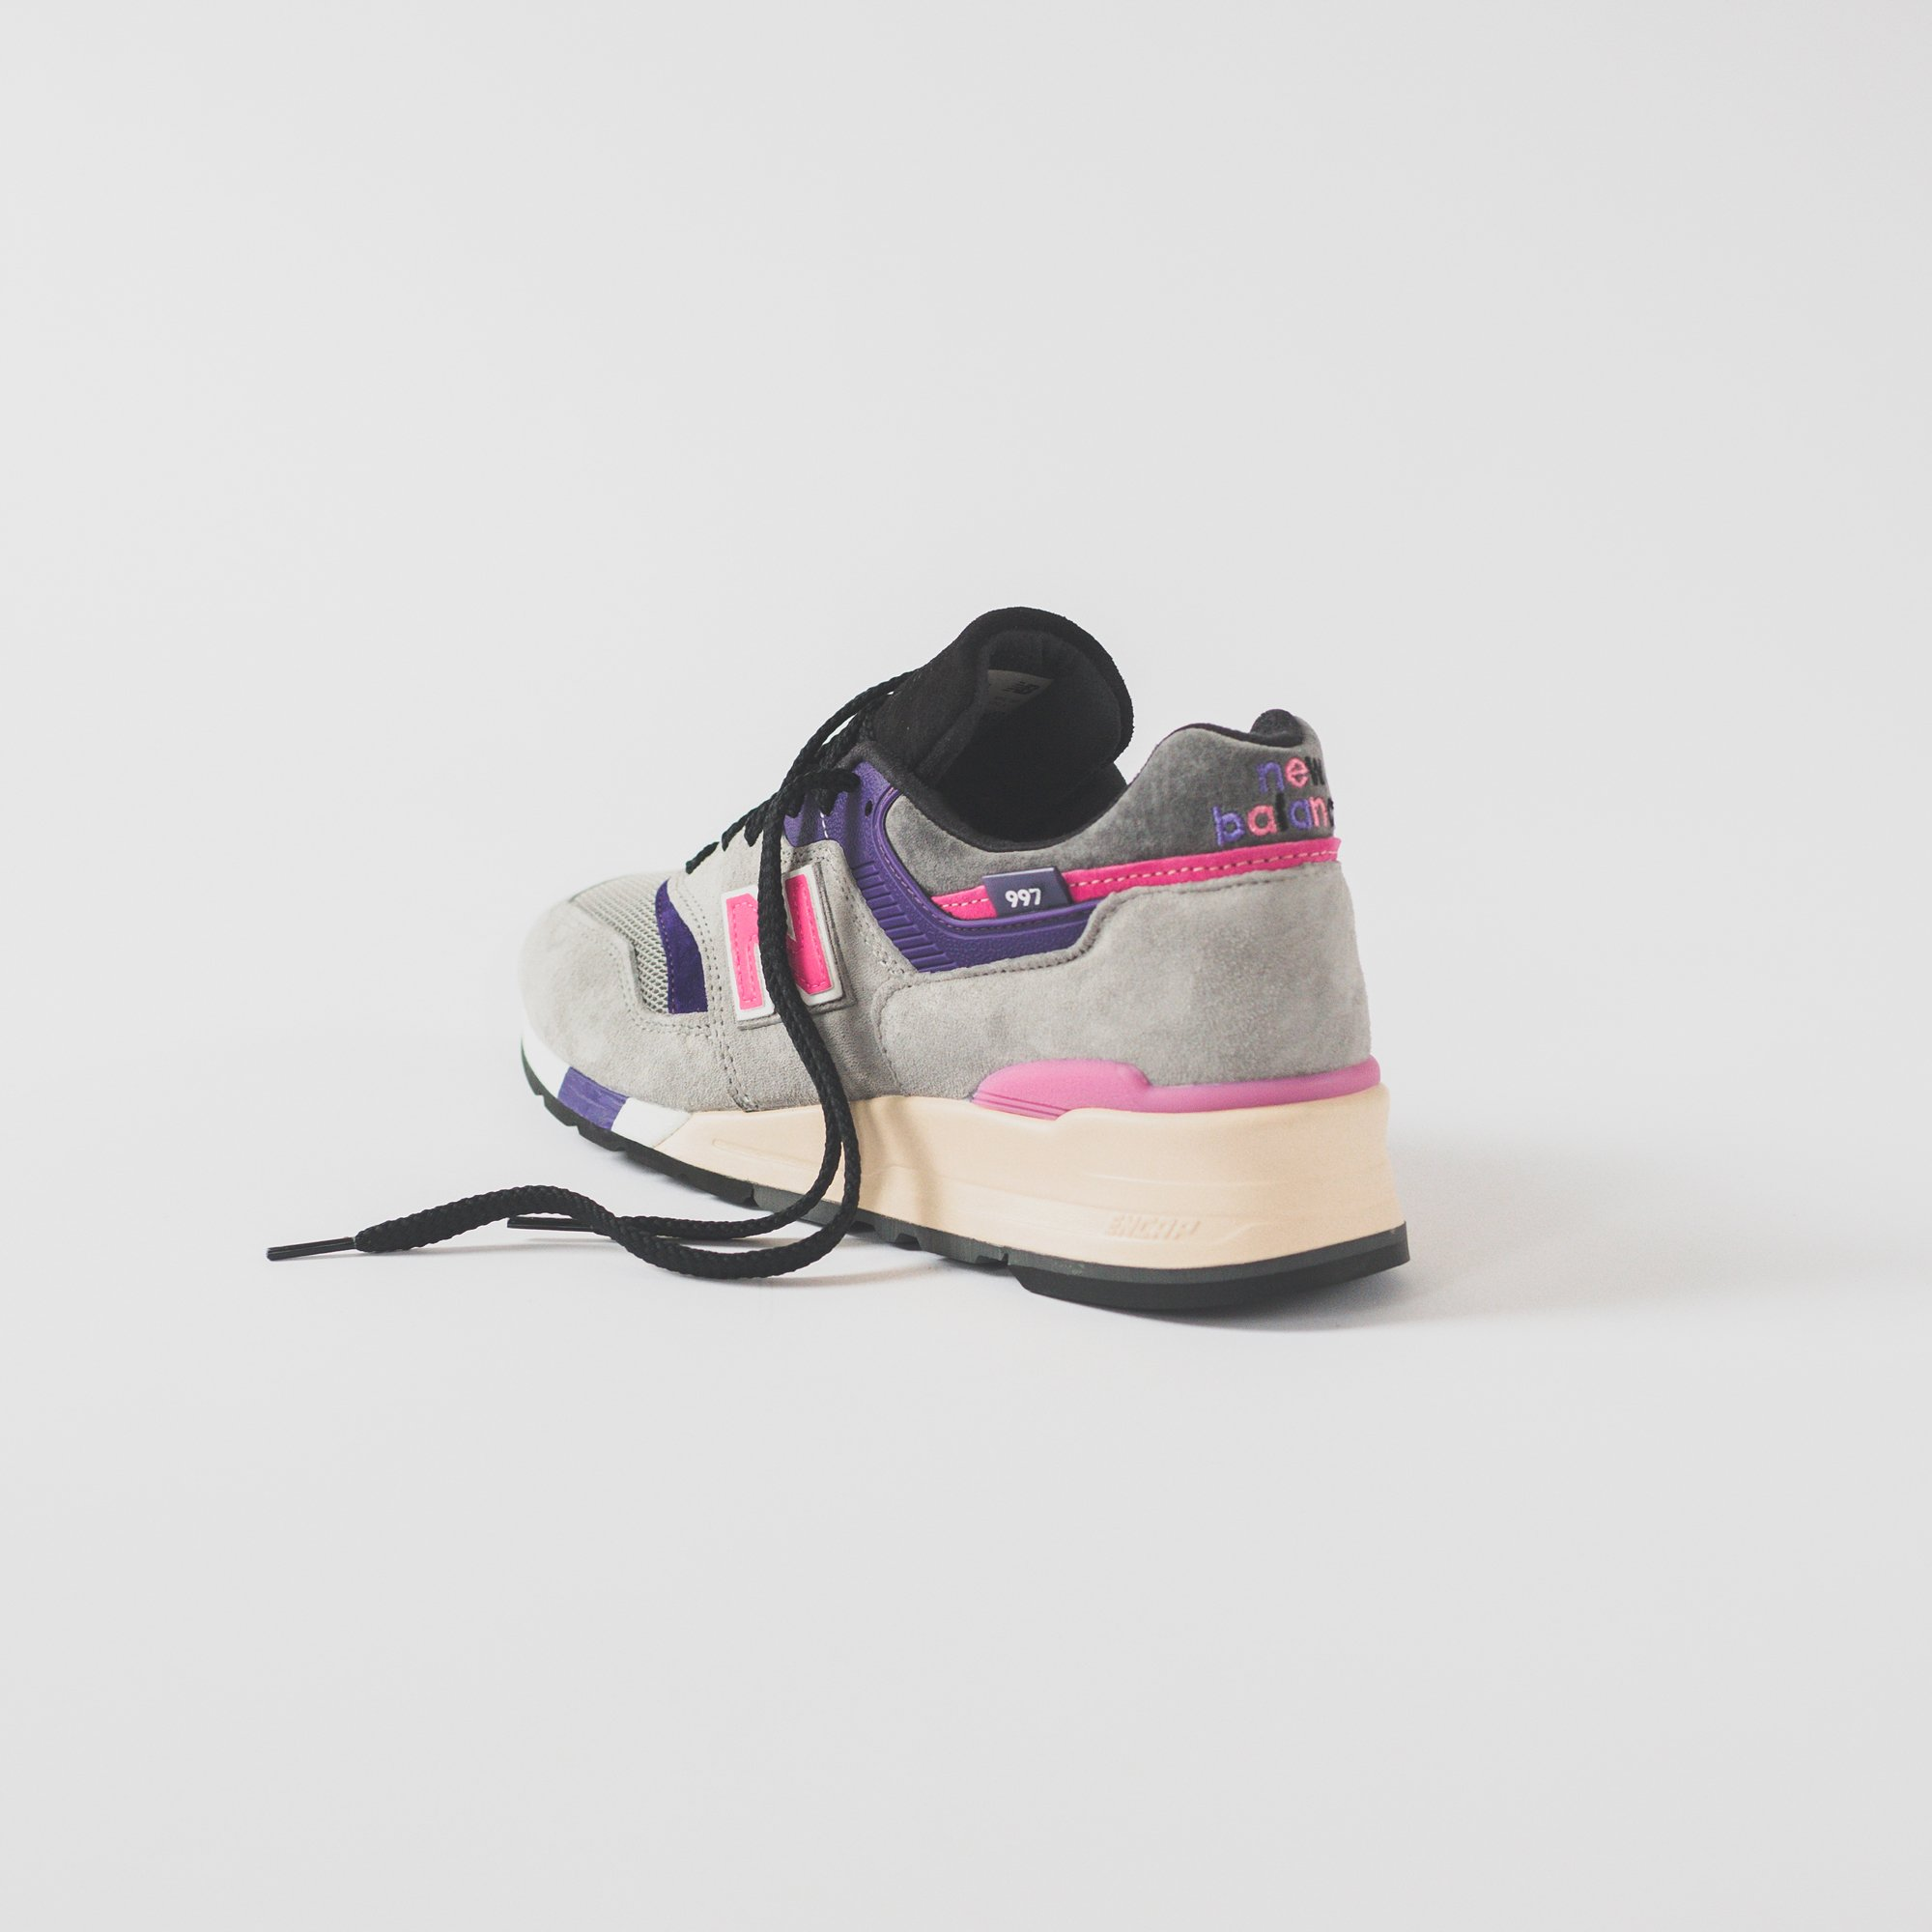 quality design 9e8fe ac2ef Ronnie Fieg is Dropping Six New Balance Colorways For Latest ...